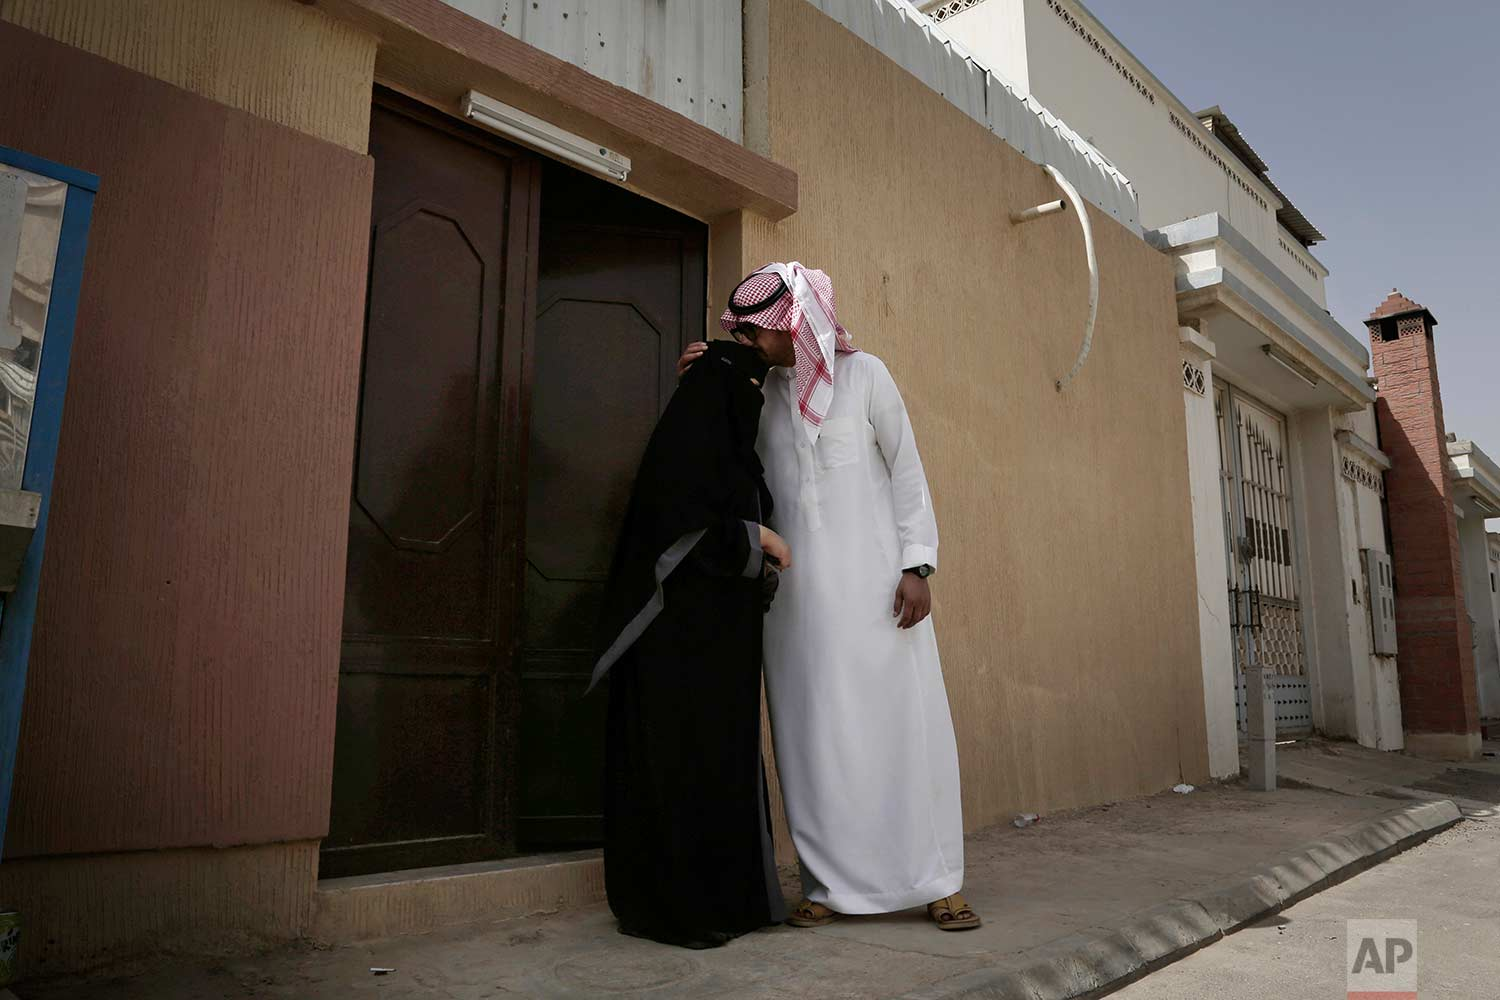 In this Sunday, June 24, 2018 photo, the brother of 27-year old Mabkhoutah al-Mari, kisses her forehead before she drives to work for the first time in Riyadh, Saudi Arabia. (AP Photo/Nariman El-Mofty)